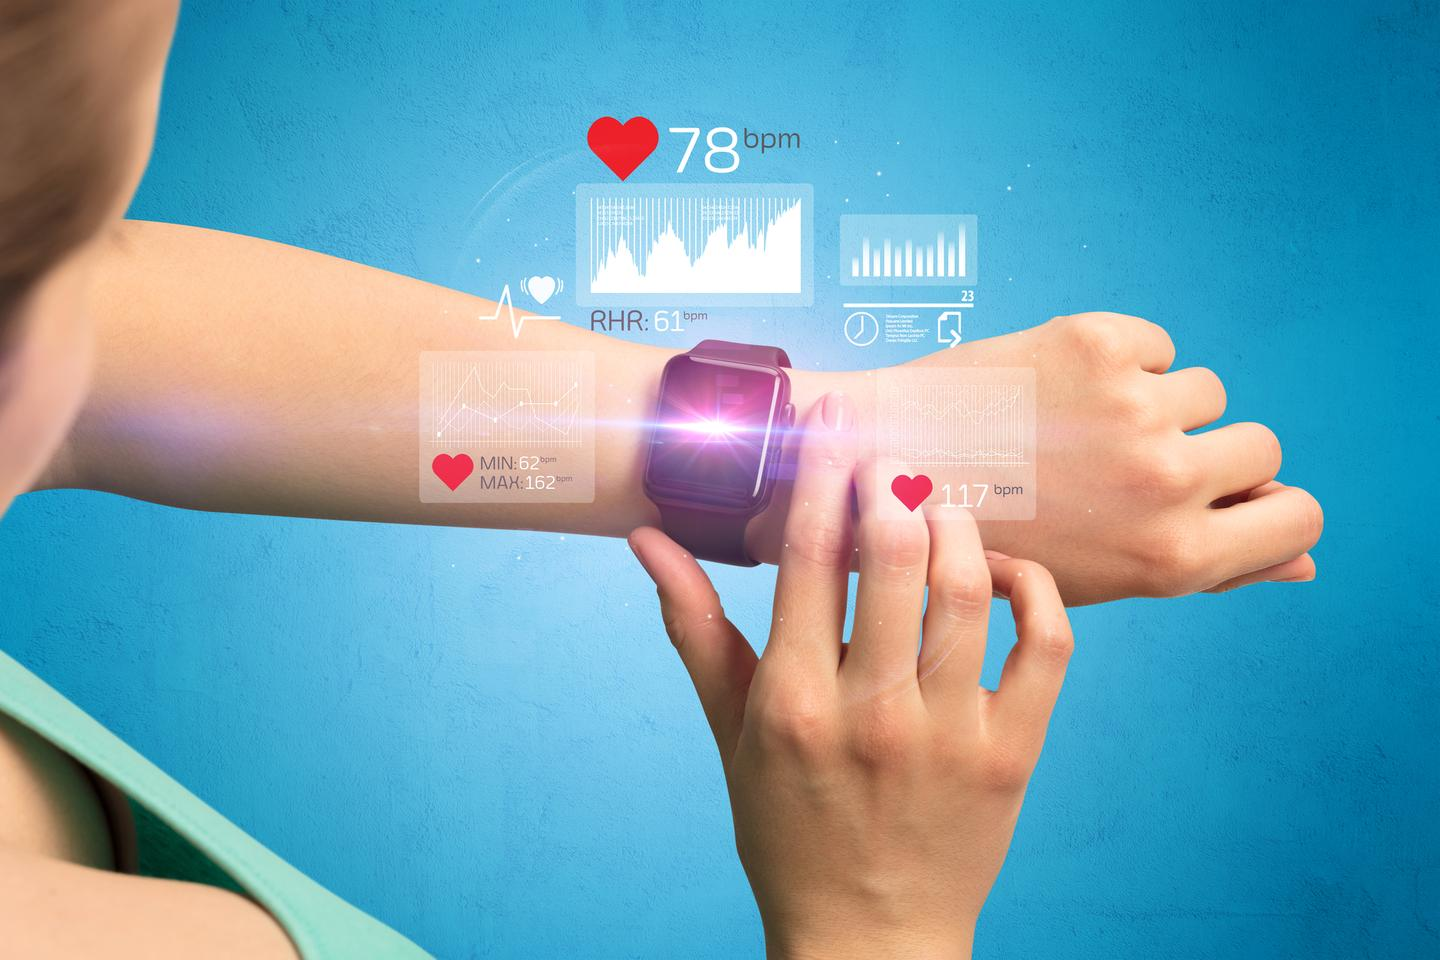 A preliminary study found over 90 percent of depressed patients could be identified from 24 hours of heart rate data